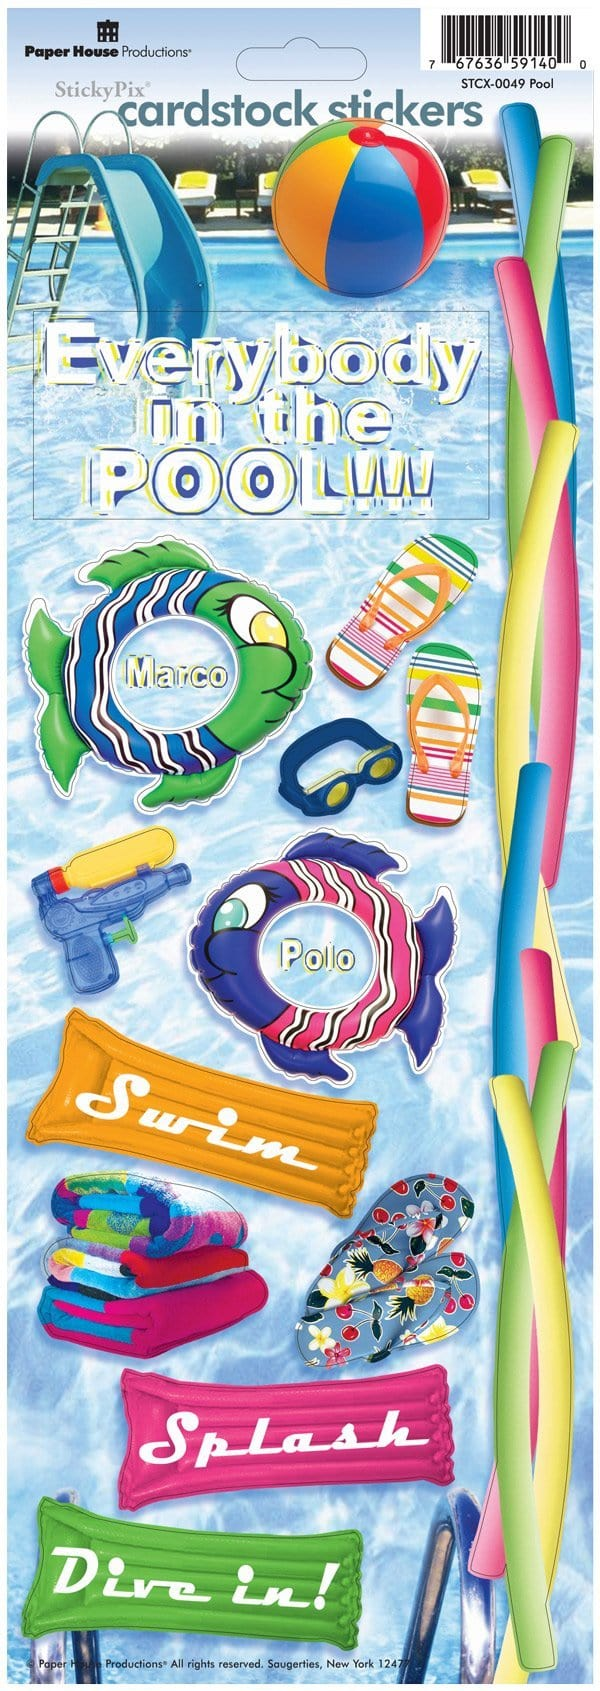 Swimming Pool Cardstock Stickers